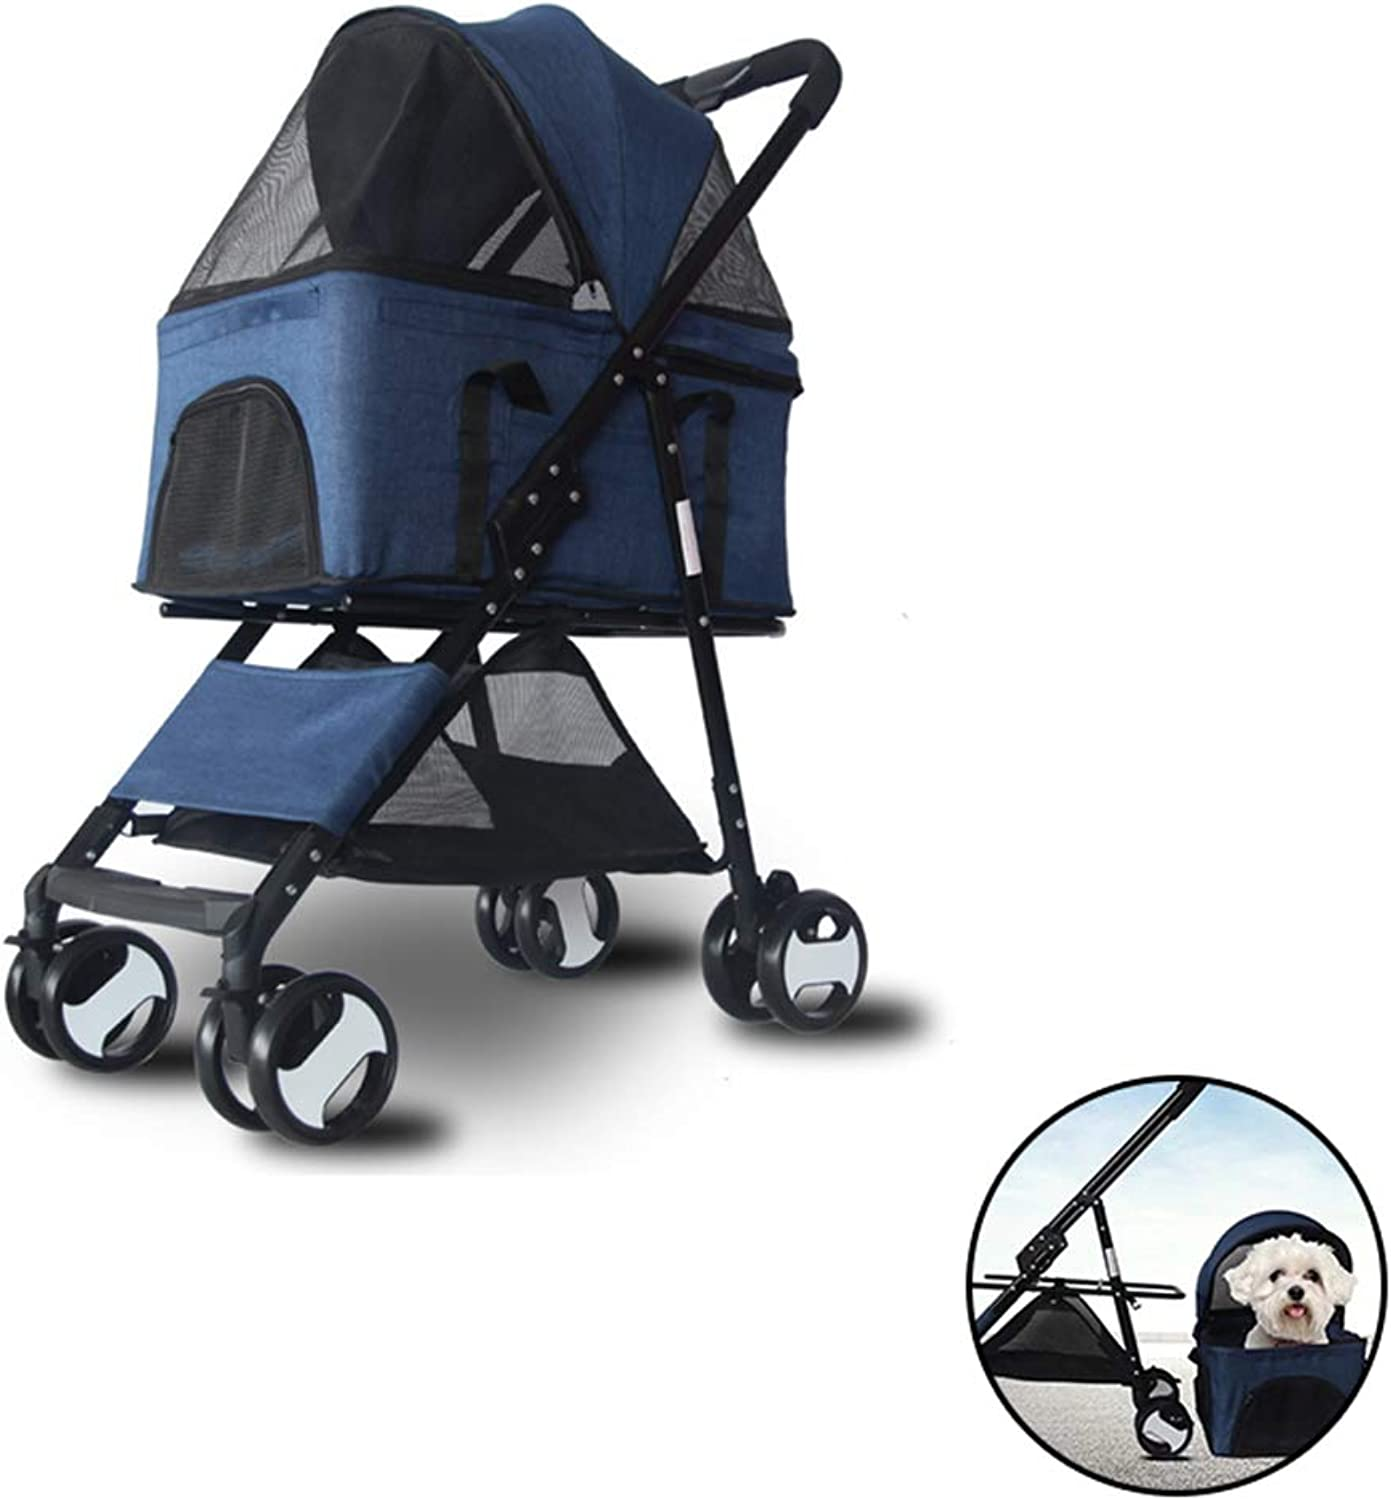 PETSUPPLY Pet Travel Stroller Cat Dog Pushchair Trolley Puppy Jogger Carrier Four Wheels,Foldable, Car Bag Detachable,Front Wheel greenical Shaft Design, 360 Degree redation,A